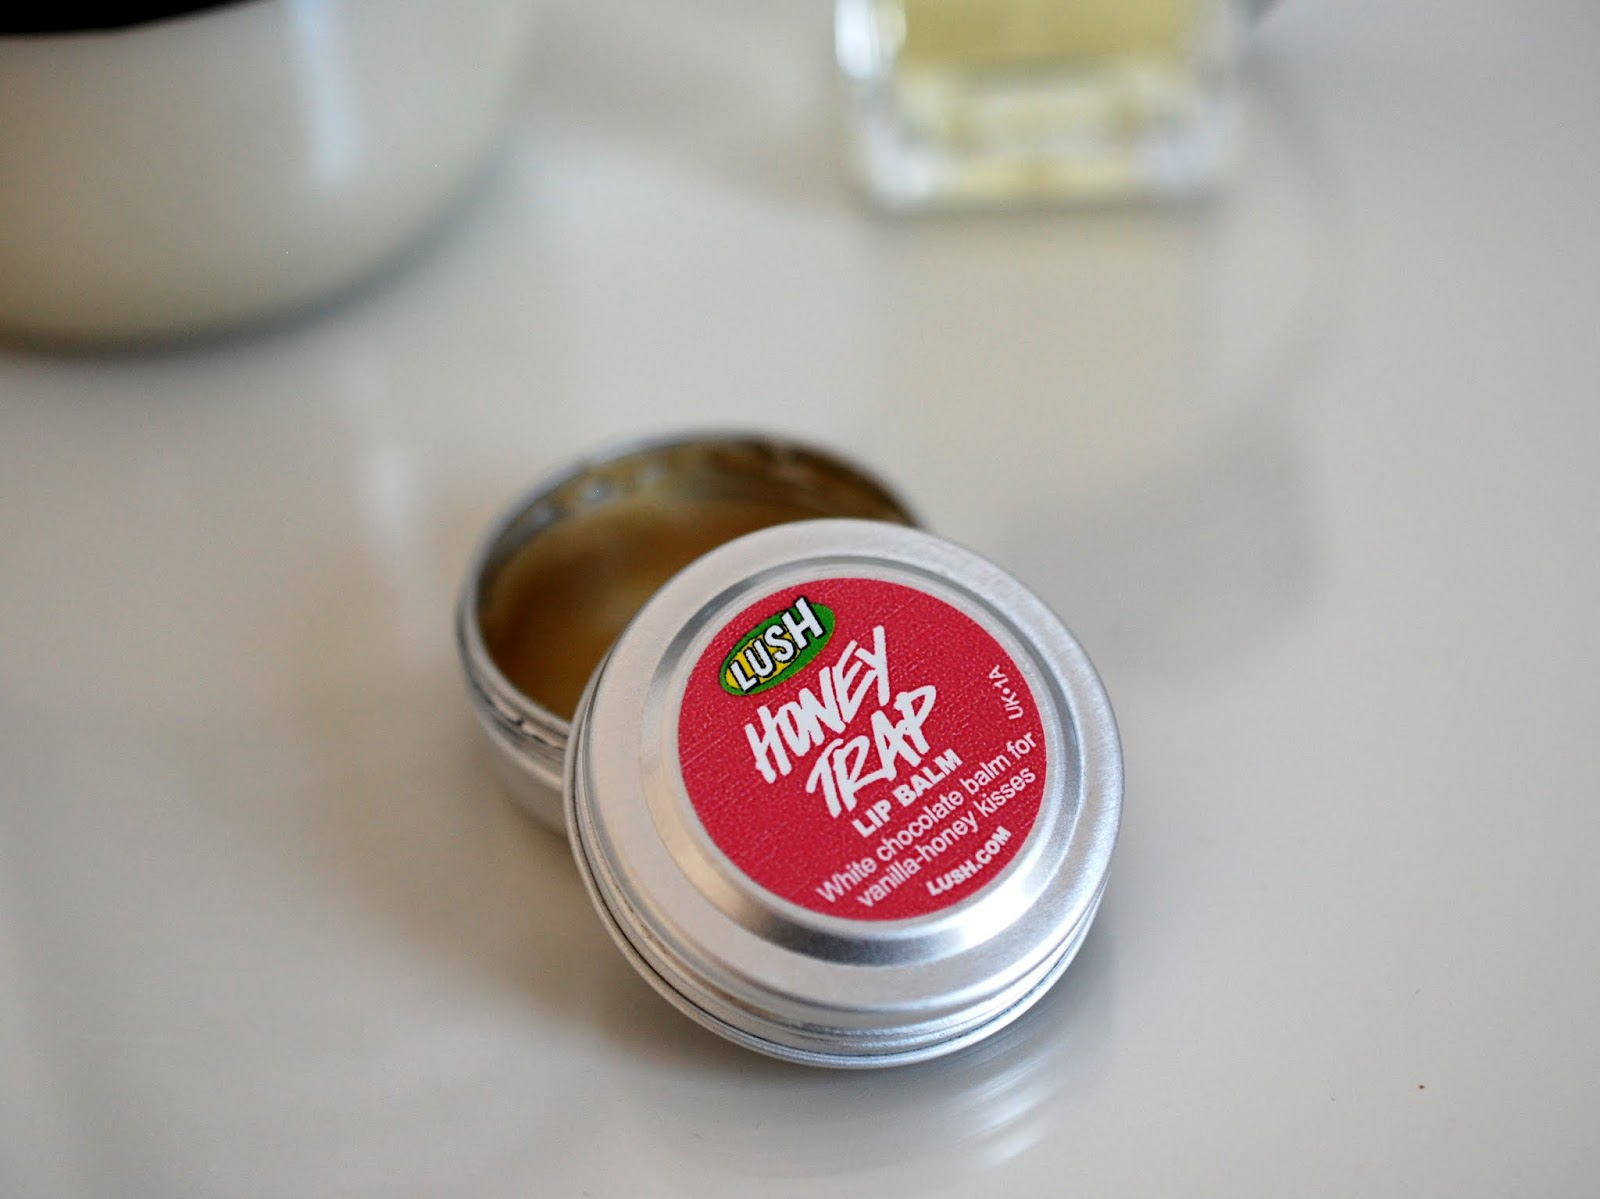 Top 3 Blogparade Lush Honey Trap Lip Balm by I need sunshine Beautyblog